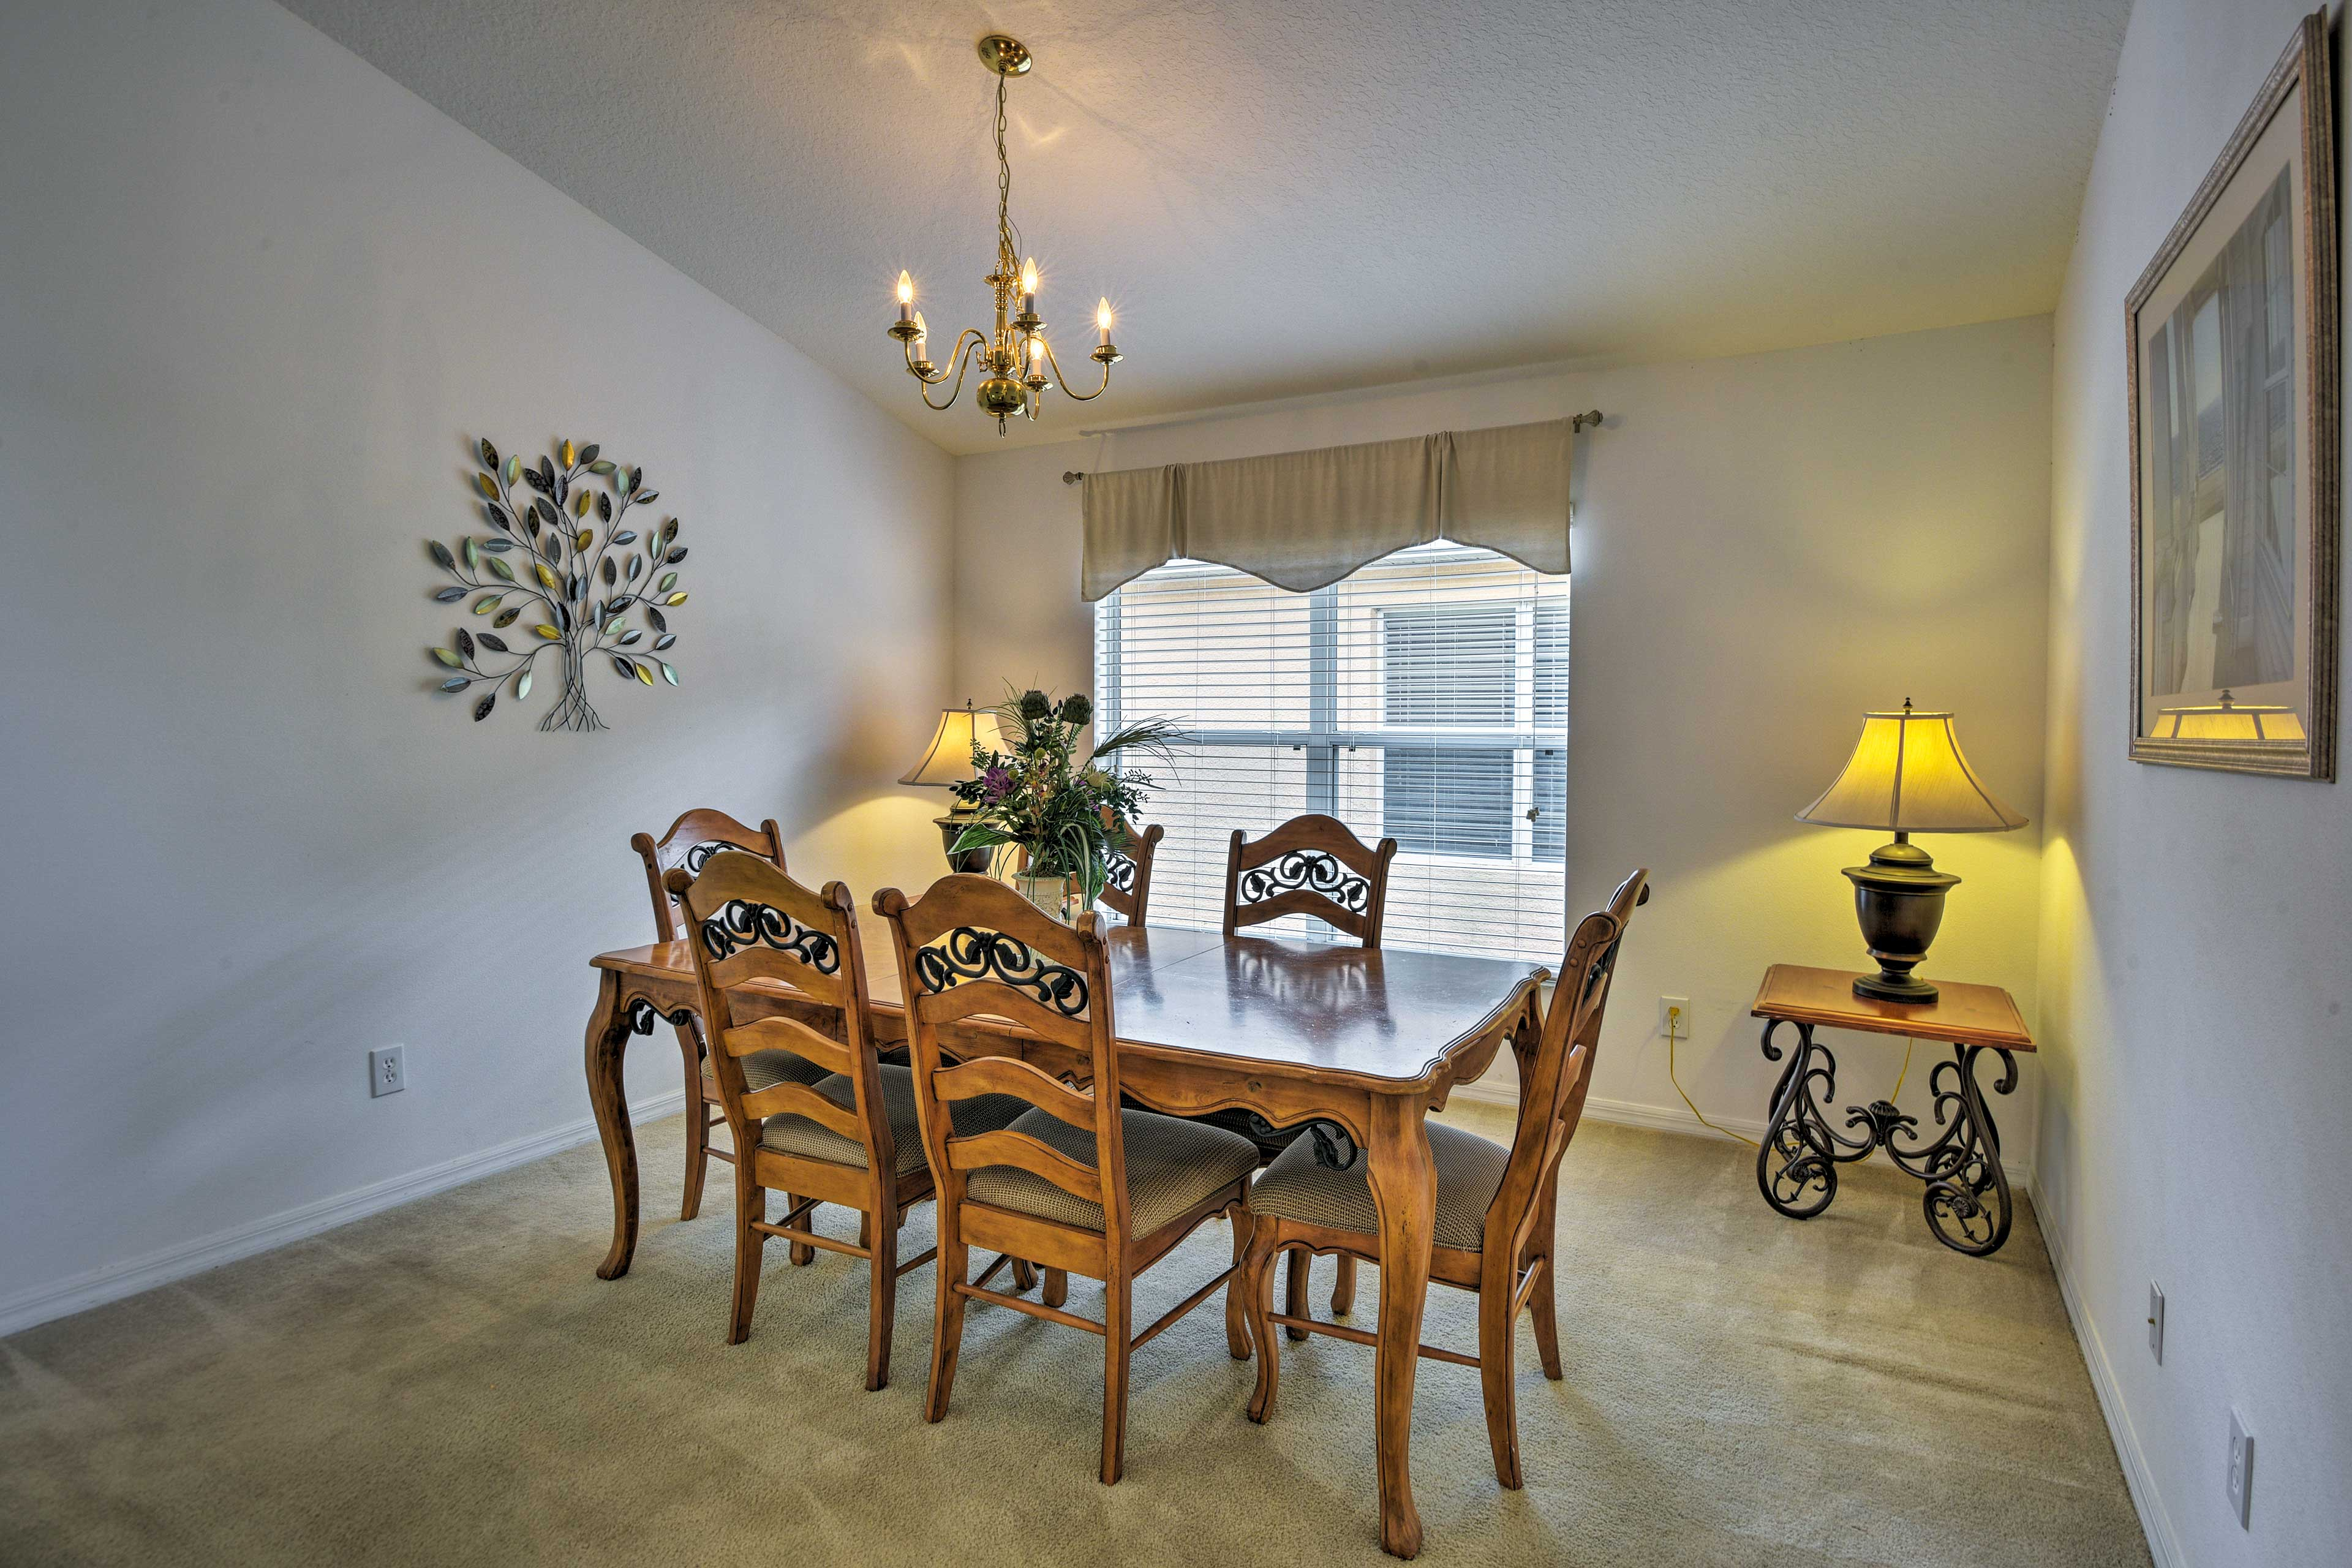 Gather around the dining room table to enjoy a home-cooked meal.